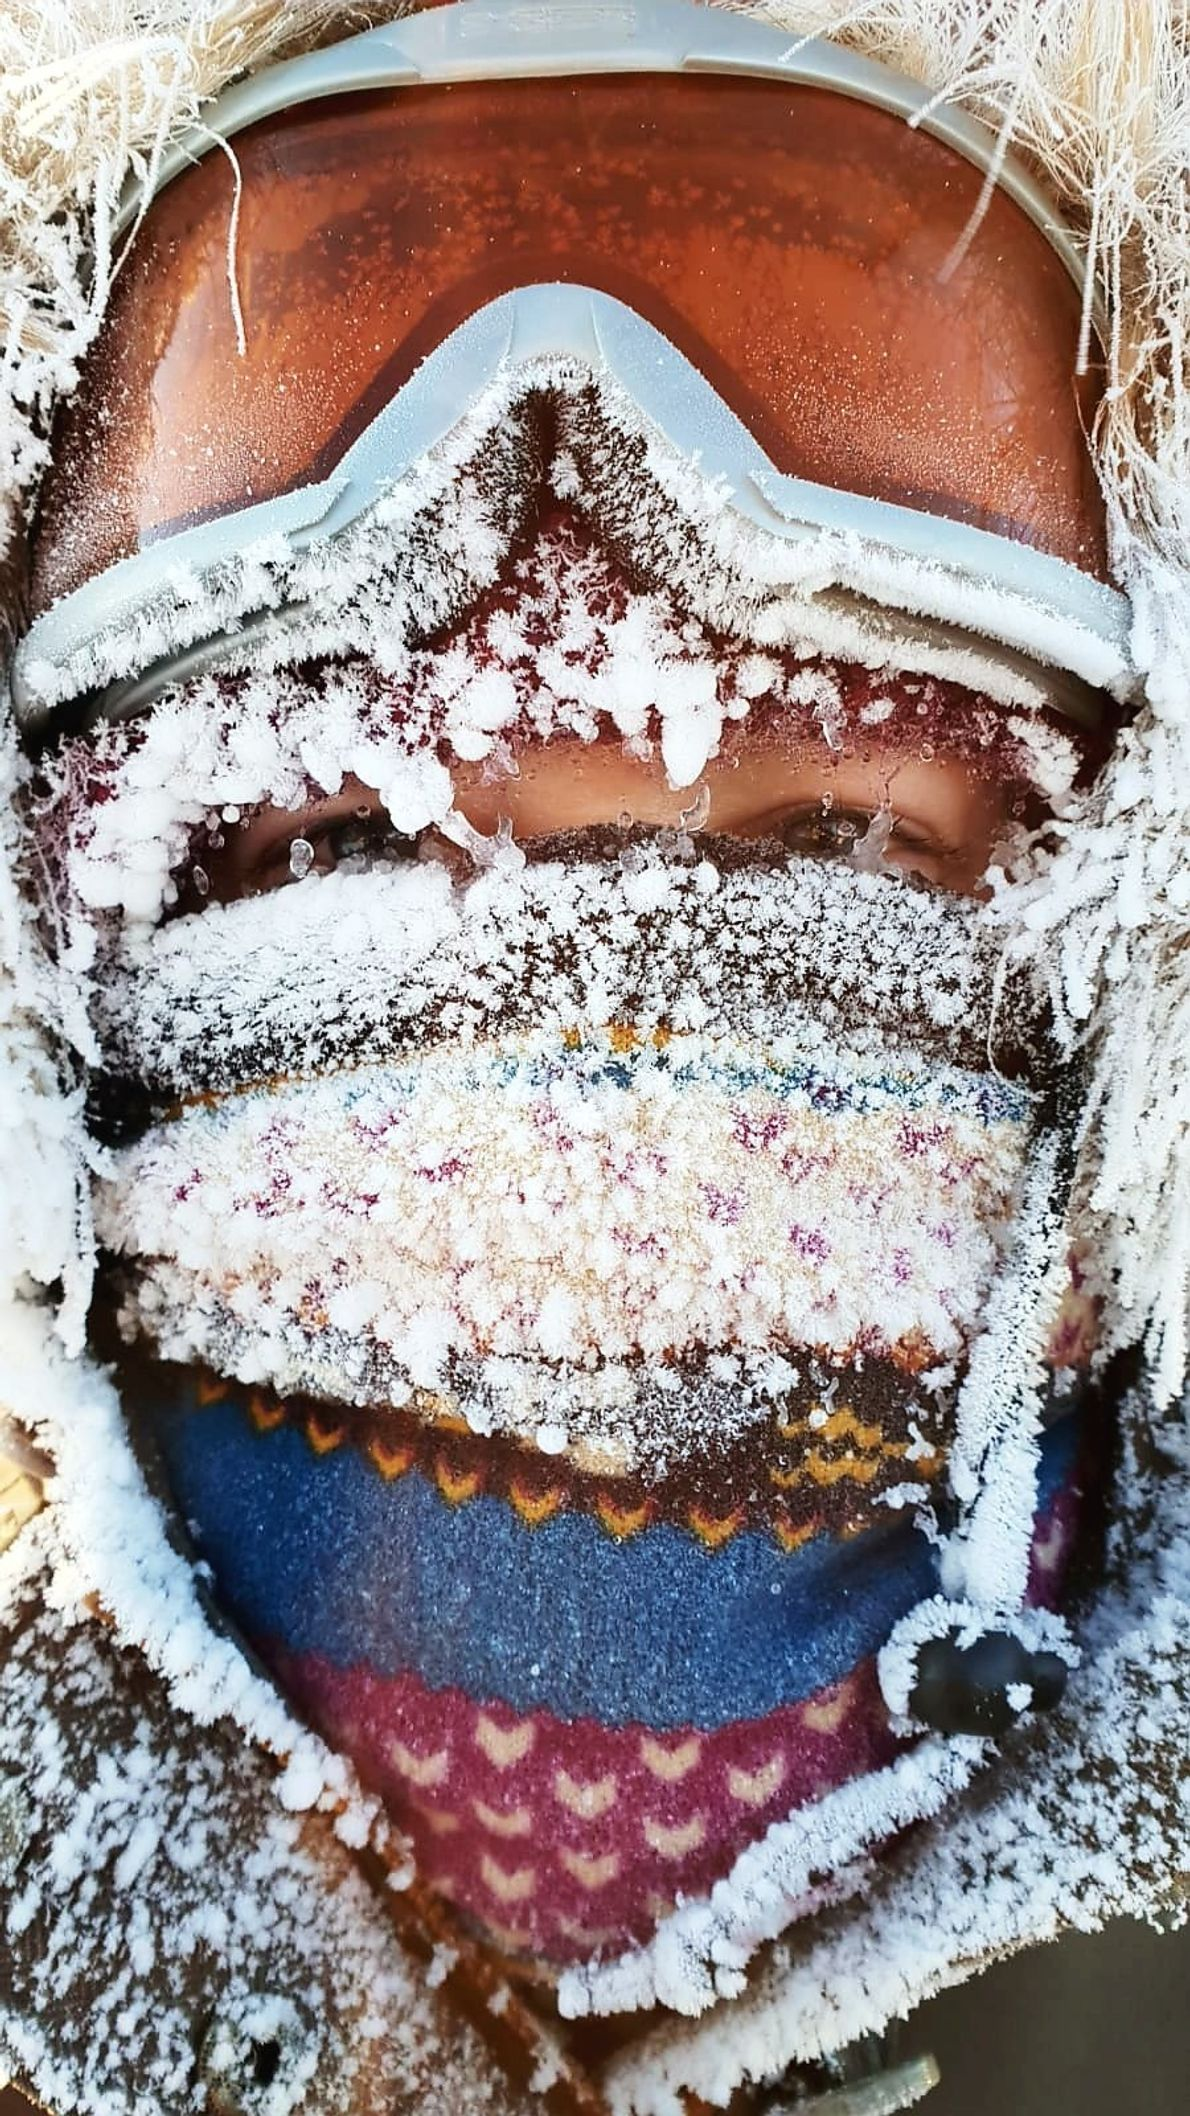 """""""I took this picture in very cold day, frost was covering everything including people faces,"""" writes ..."""